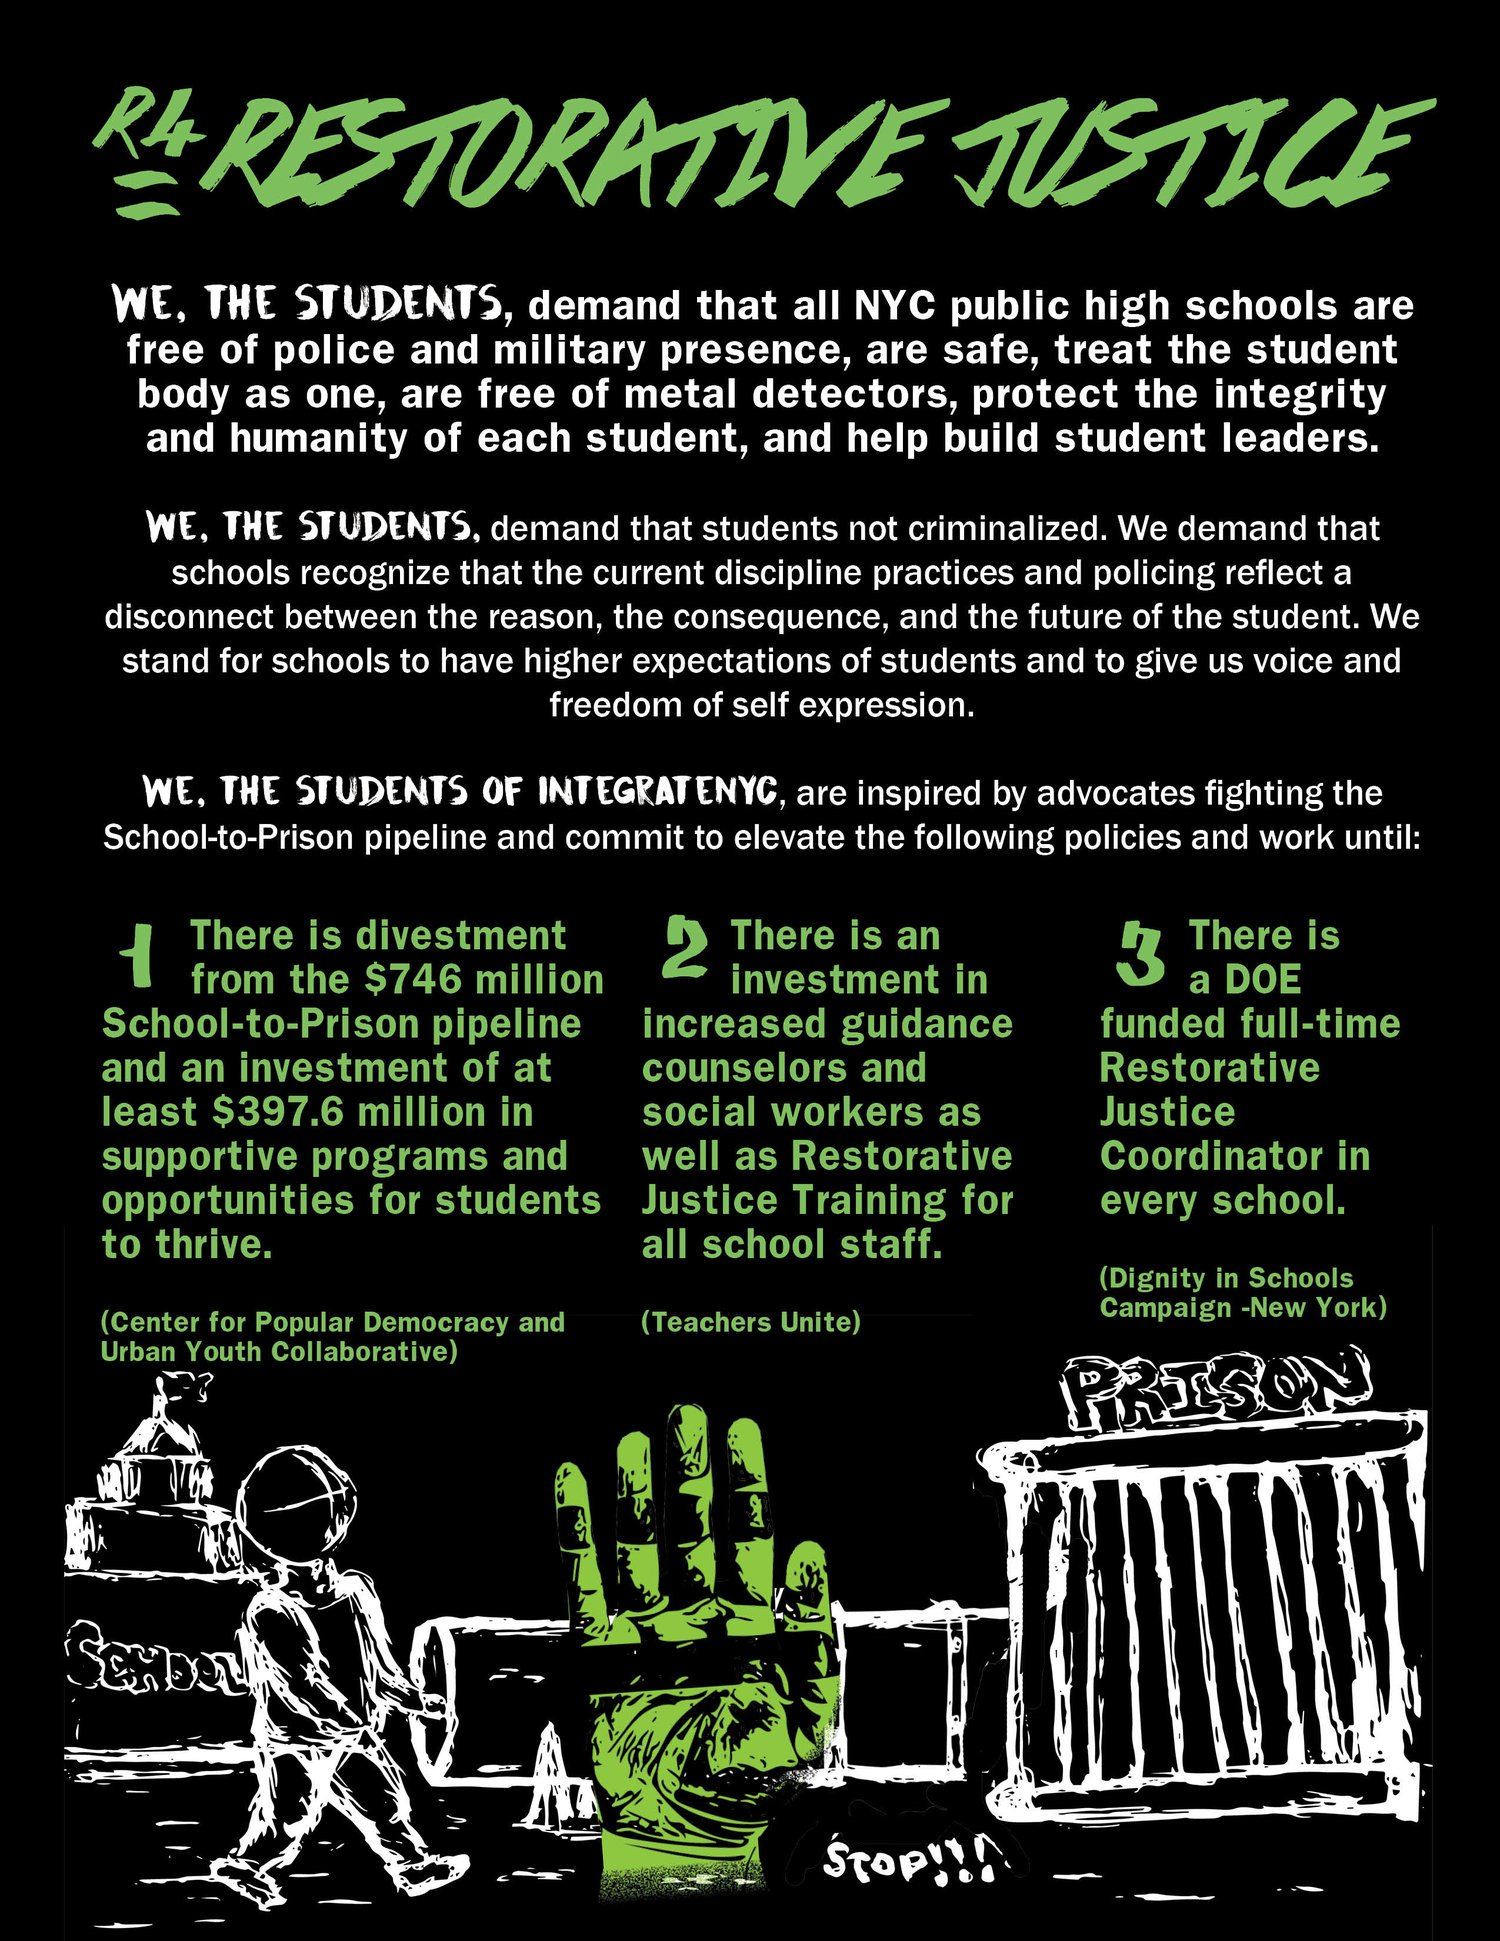 New Guidance To Help Protect Student >> Integratenyc On Twitter A6 Our Schools Our Safety Our